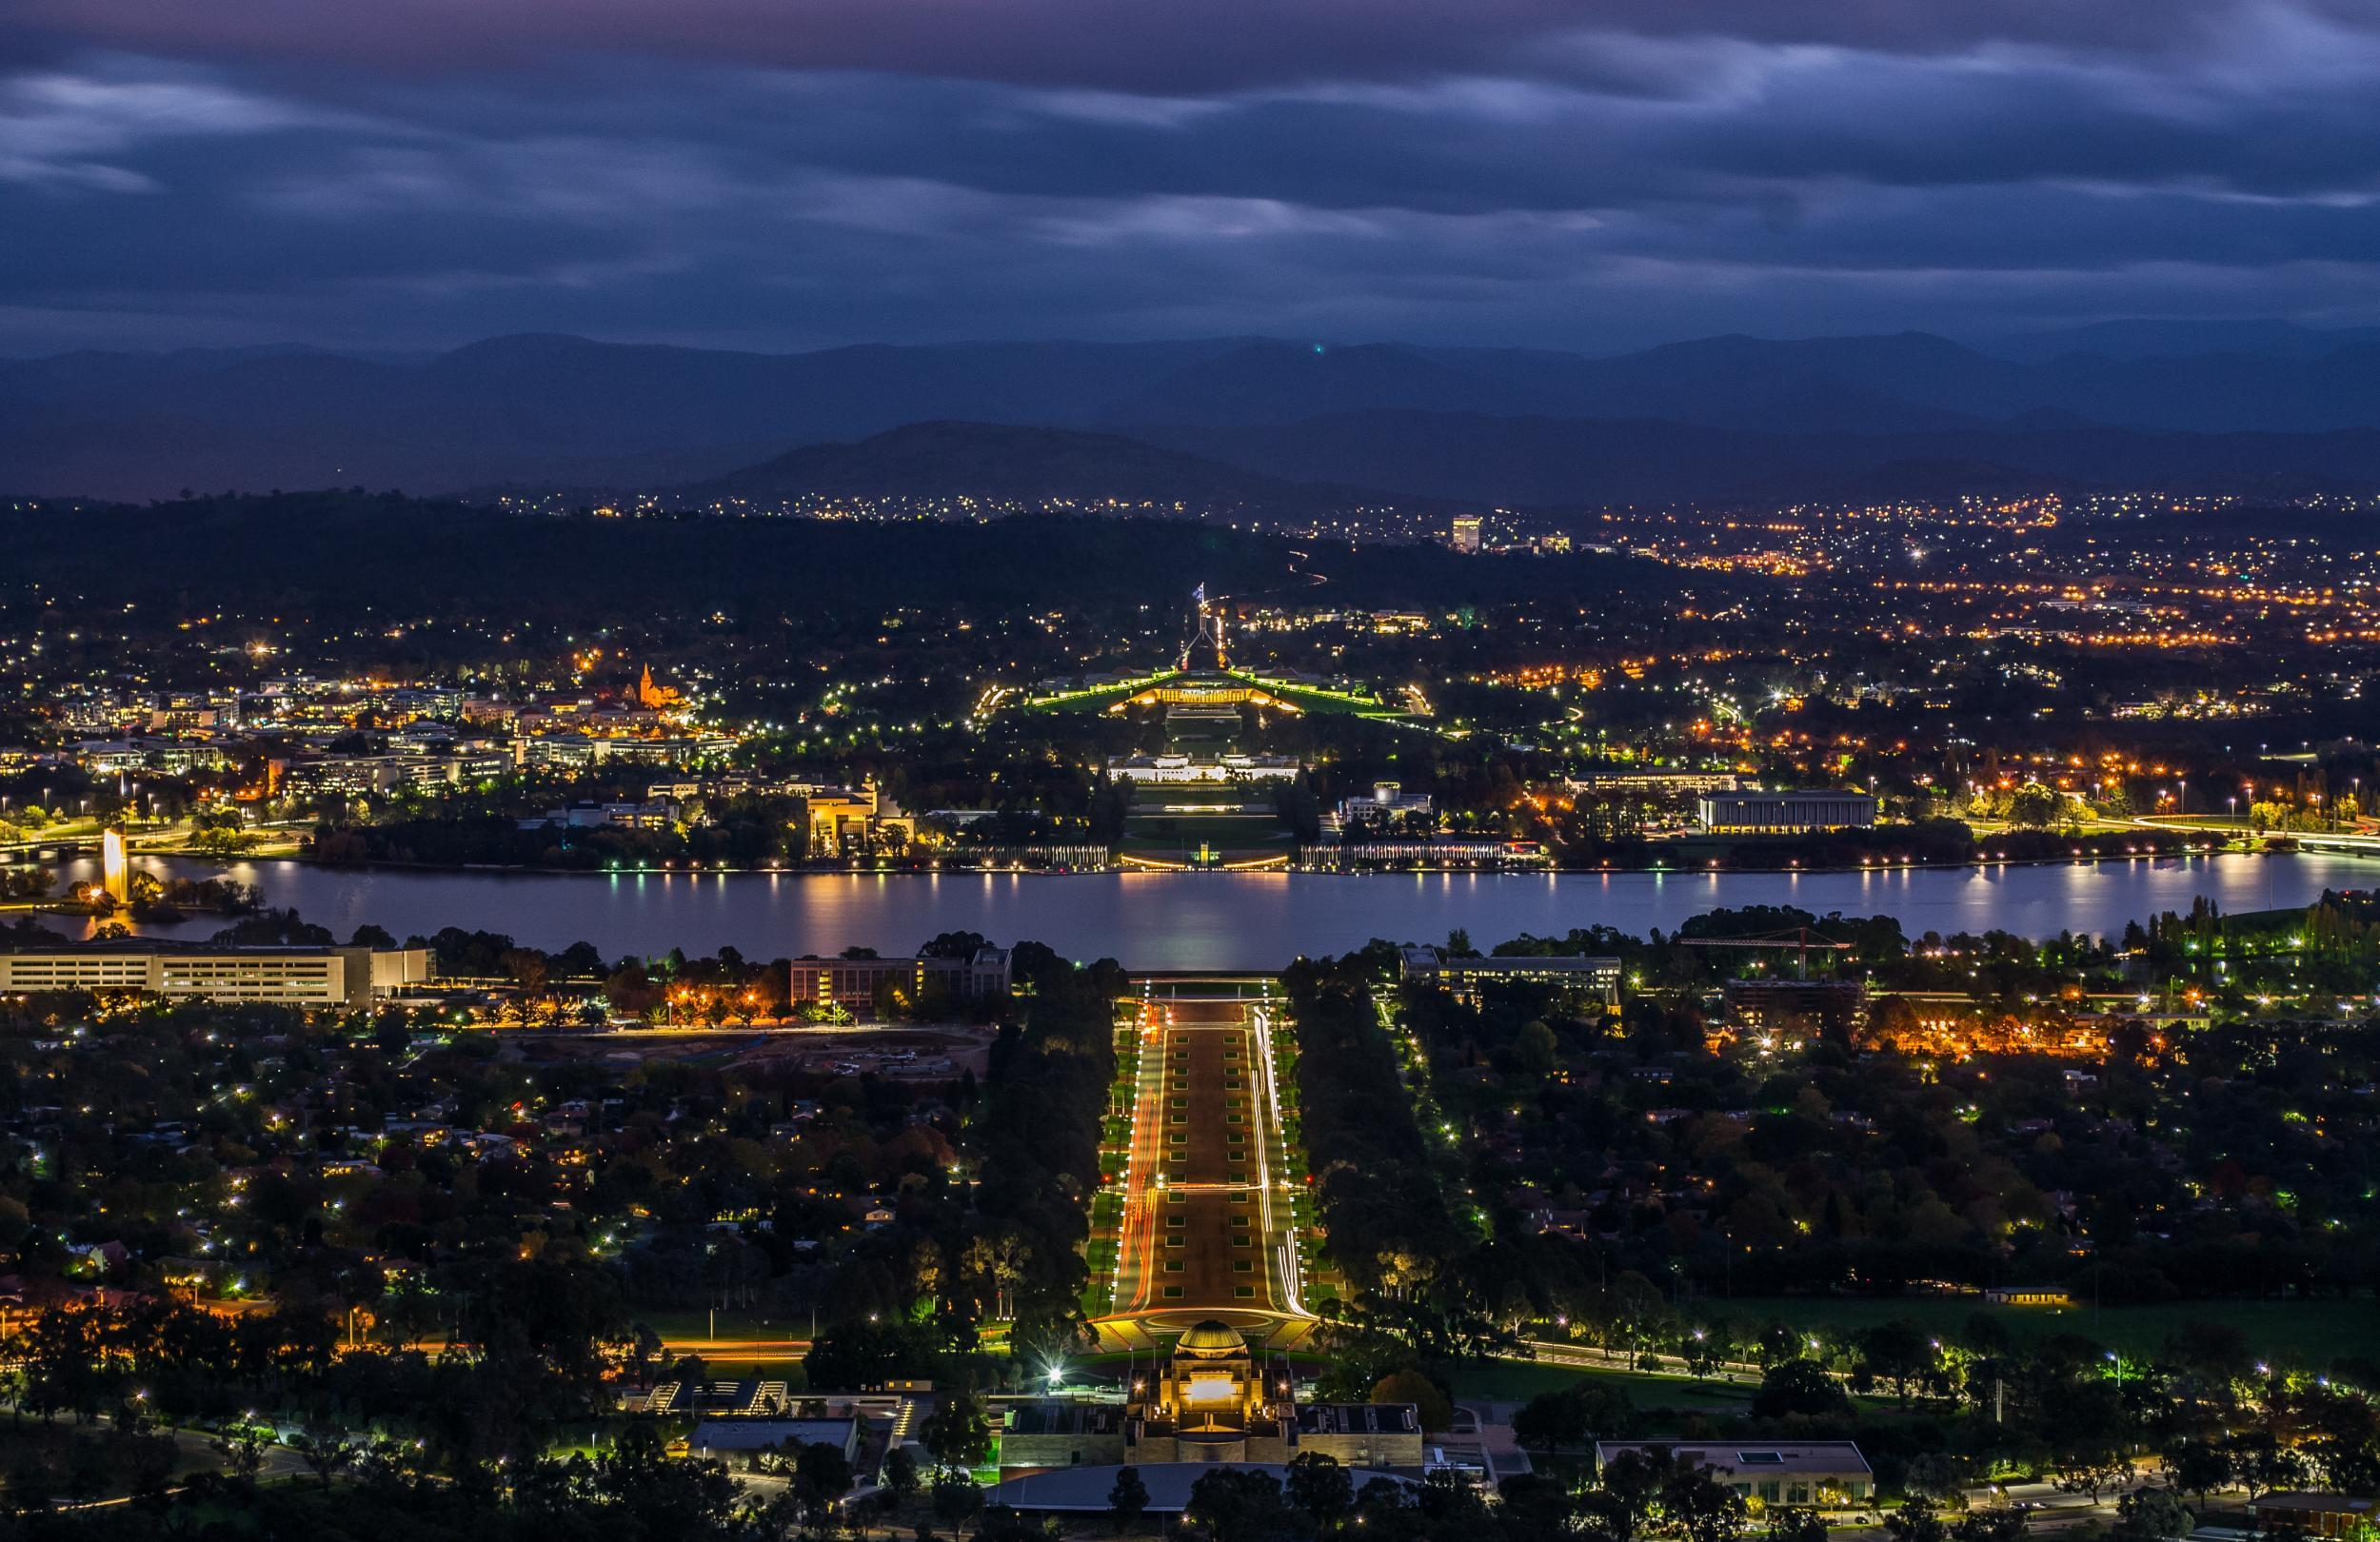 48 hours in Canberra: Hotels, restaurants and places to visit